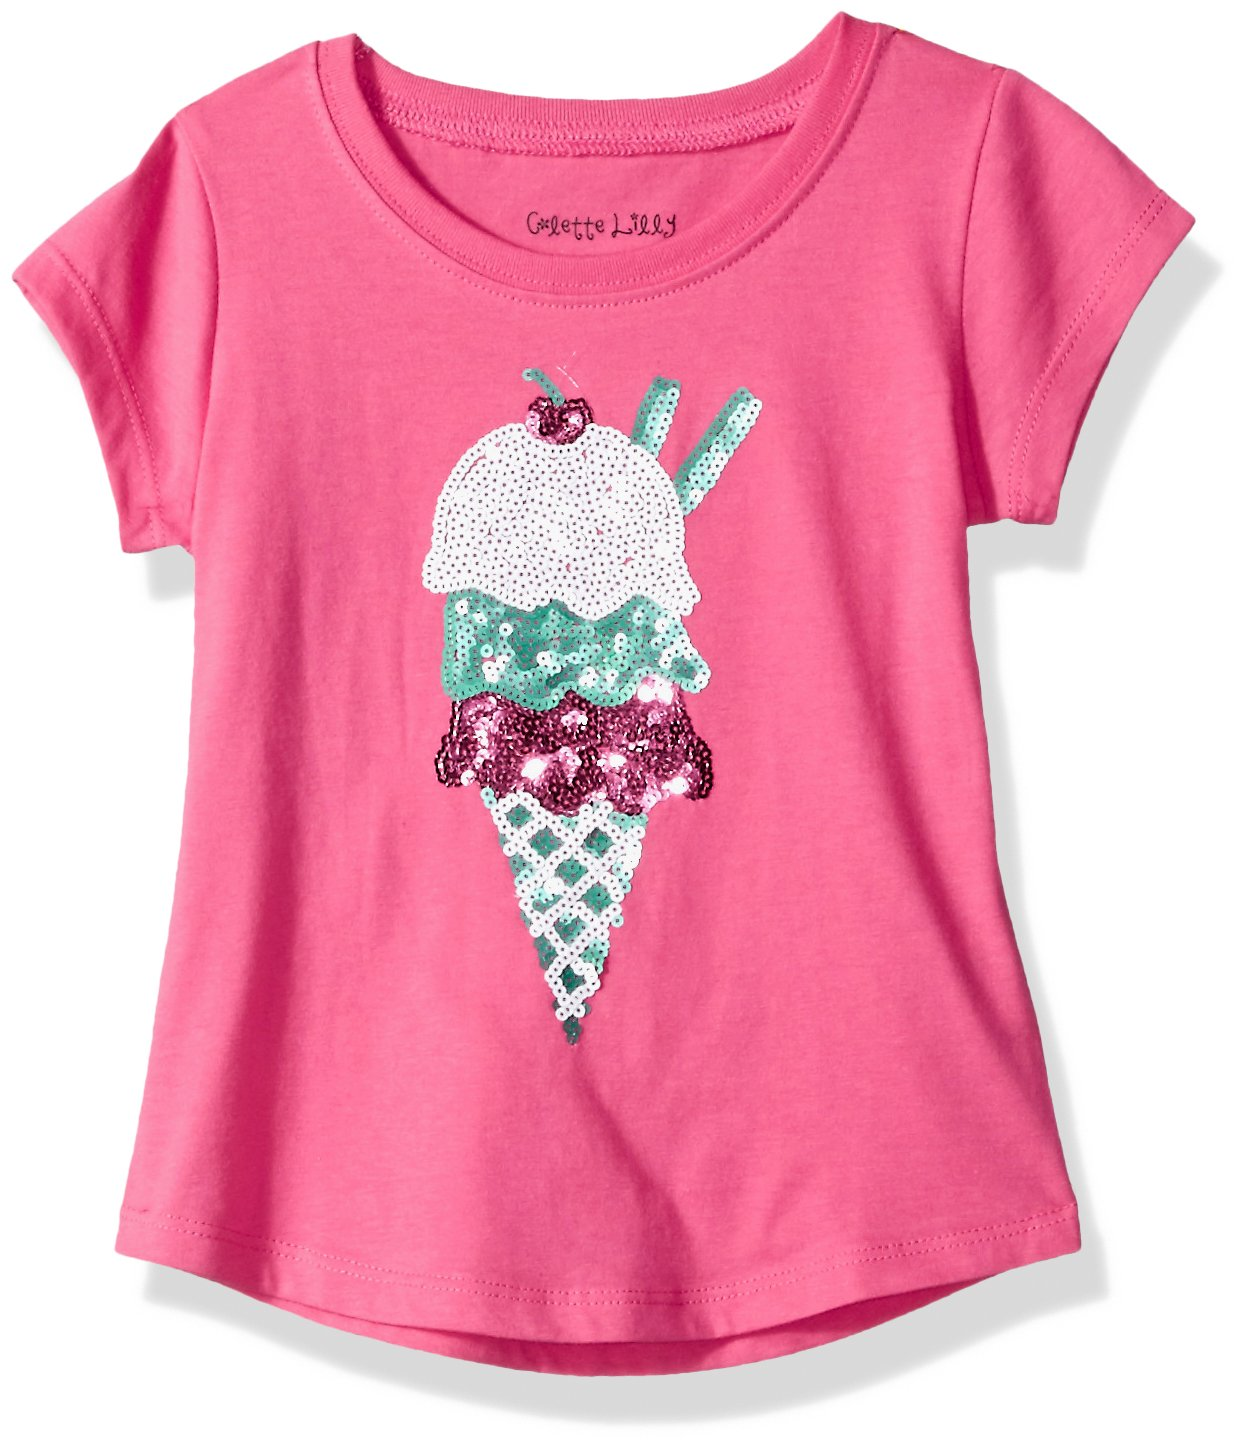 Colette Lilly Little Girls' Short Sleee Sequin Tee, Pink Ice Cream, 4